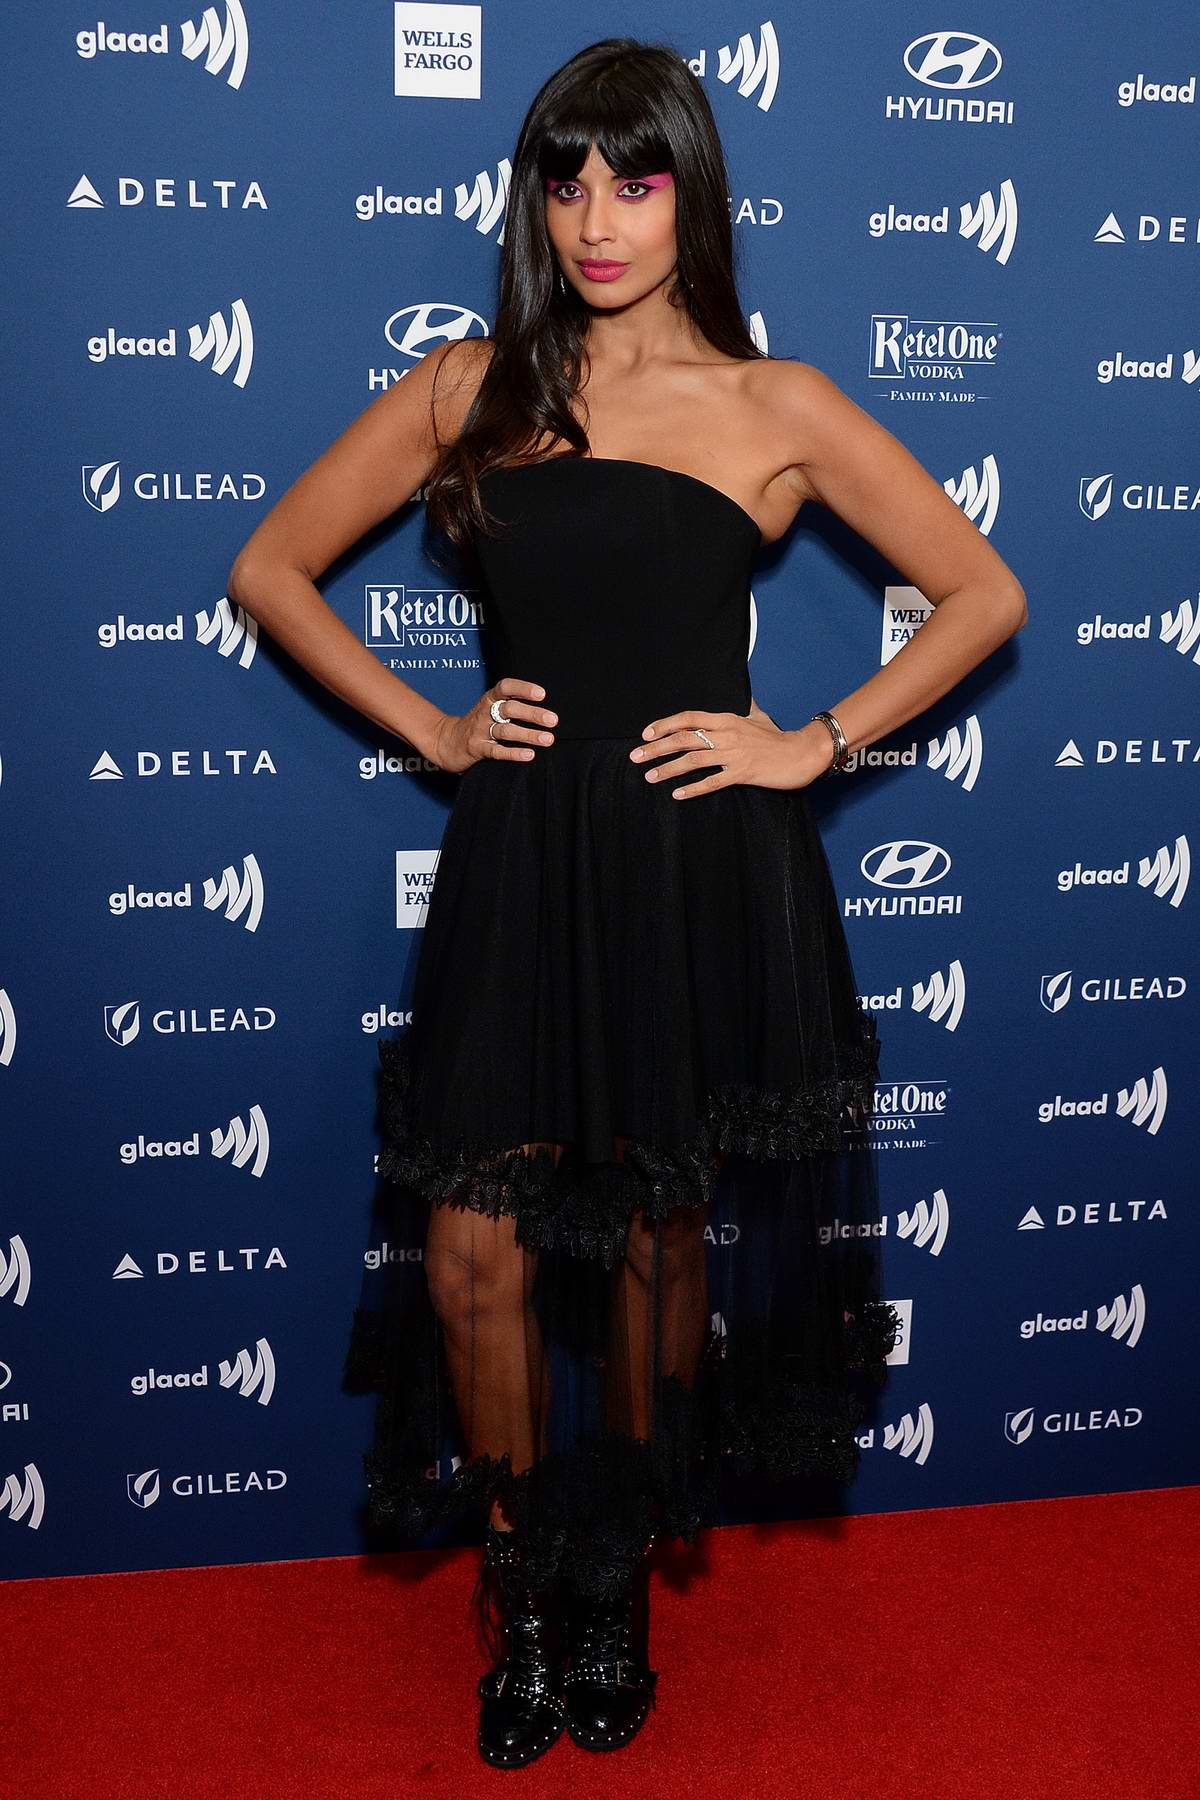 Jameela Jamil attends the 30th Annual GLAAD Media Awards at The Beverly Hilton Hotel in Beverly Hills, California